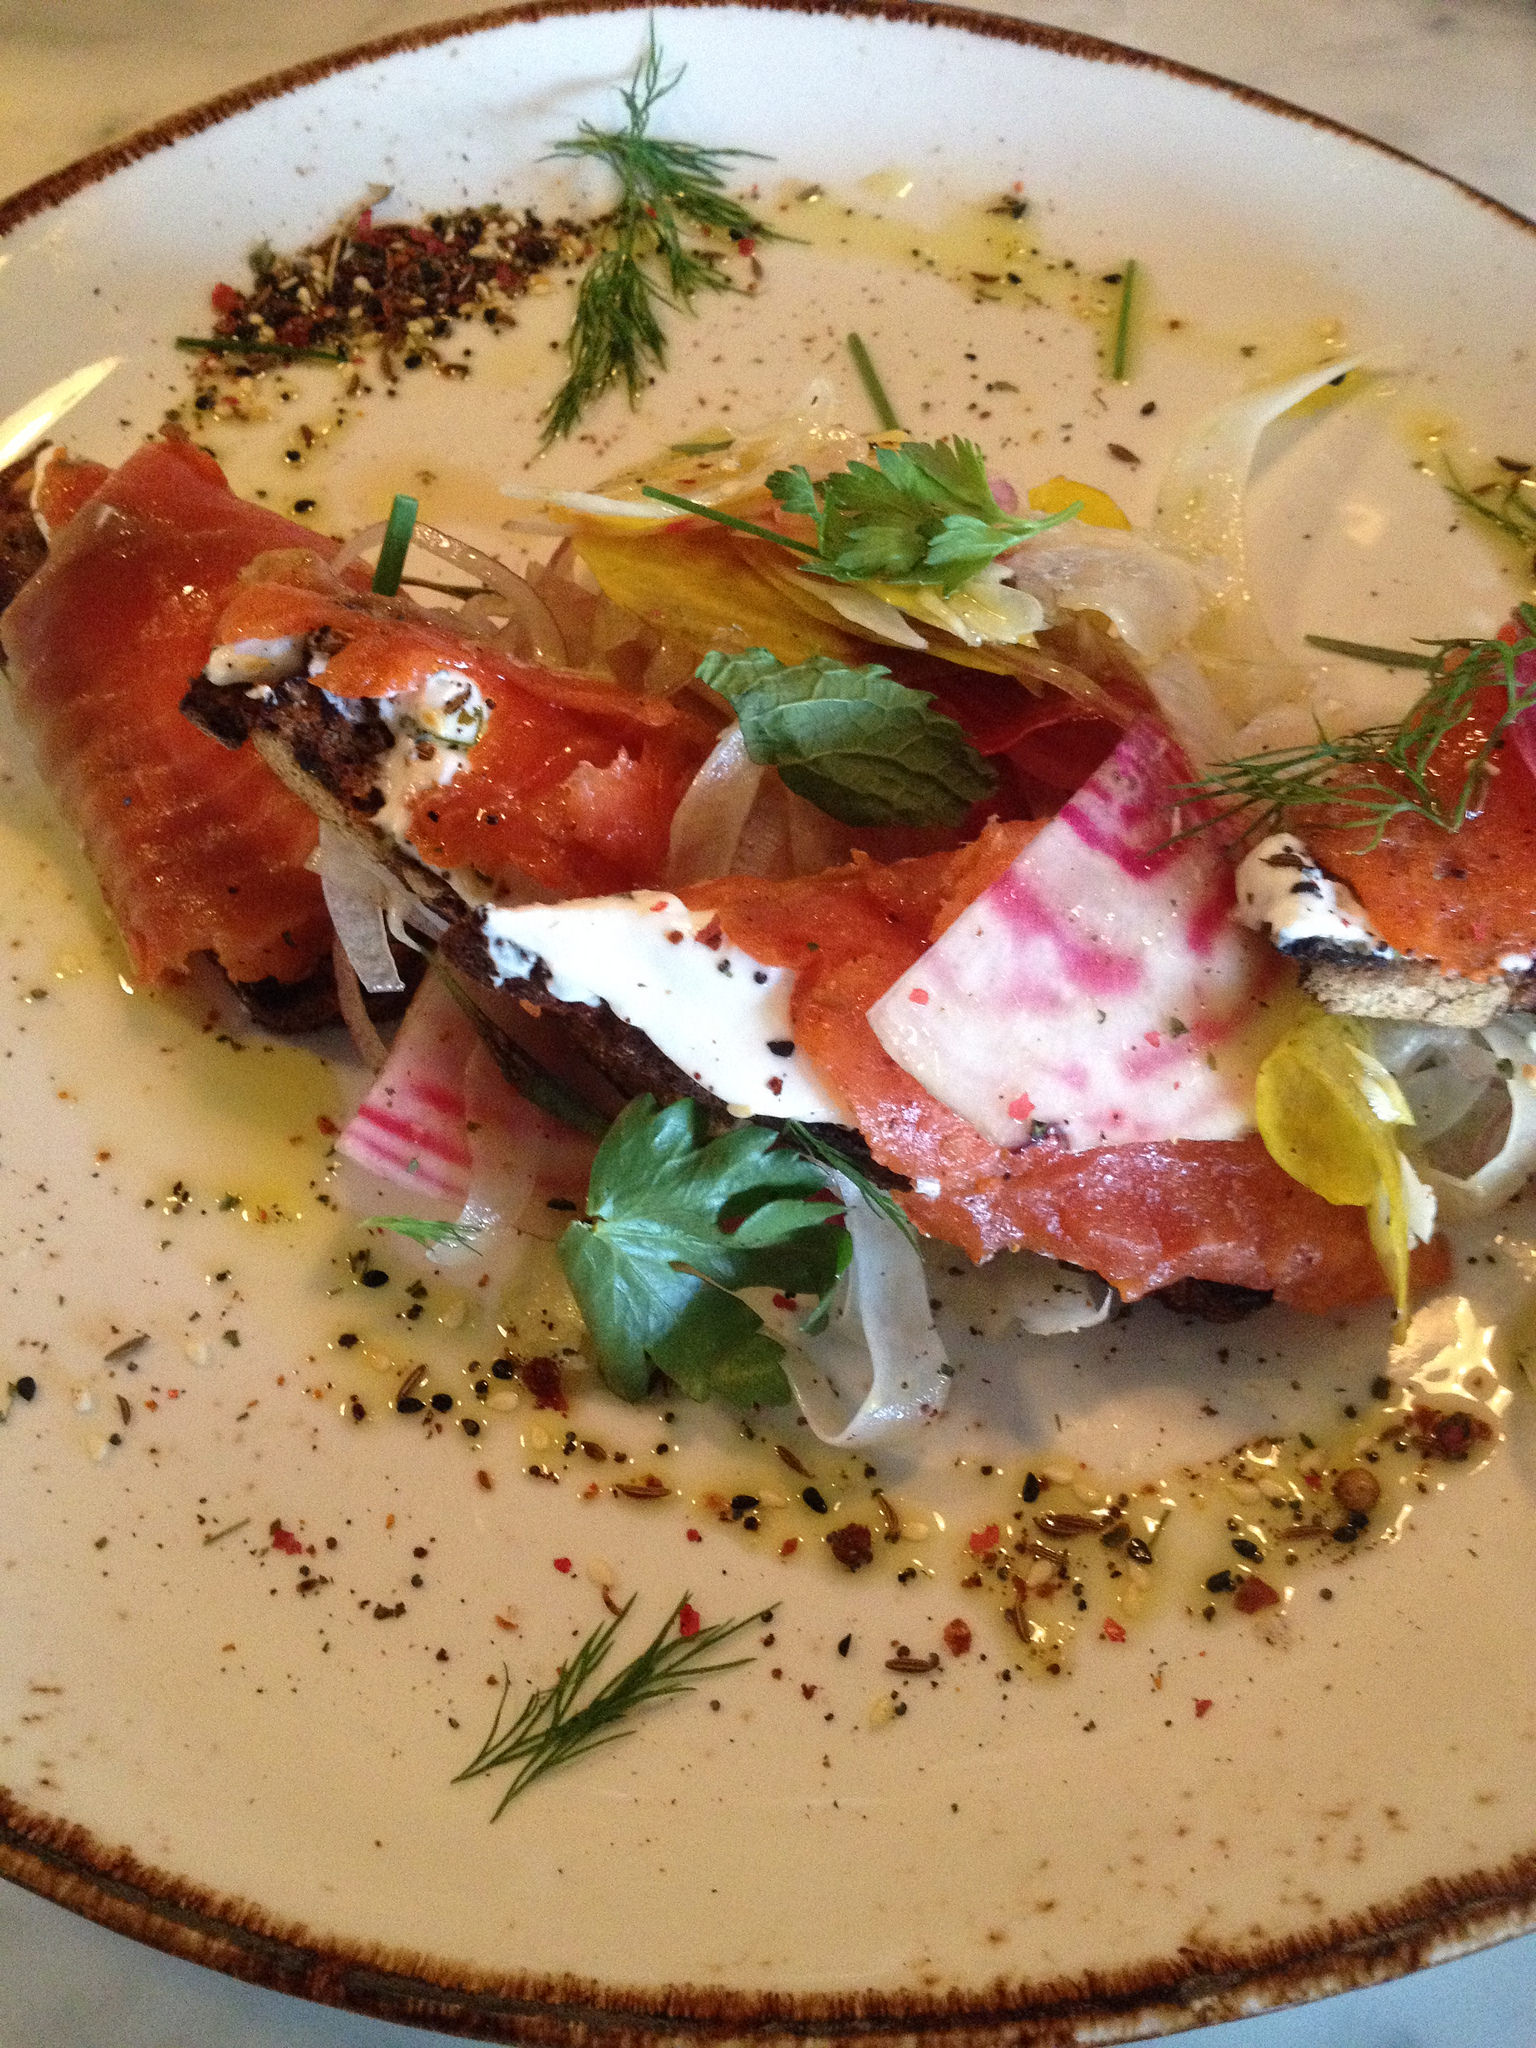 Gravlax | Jameson Fink/Flickr